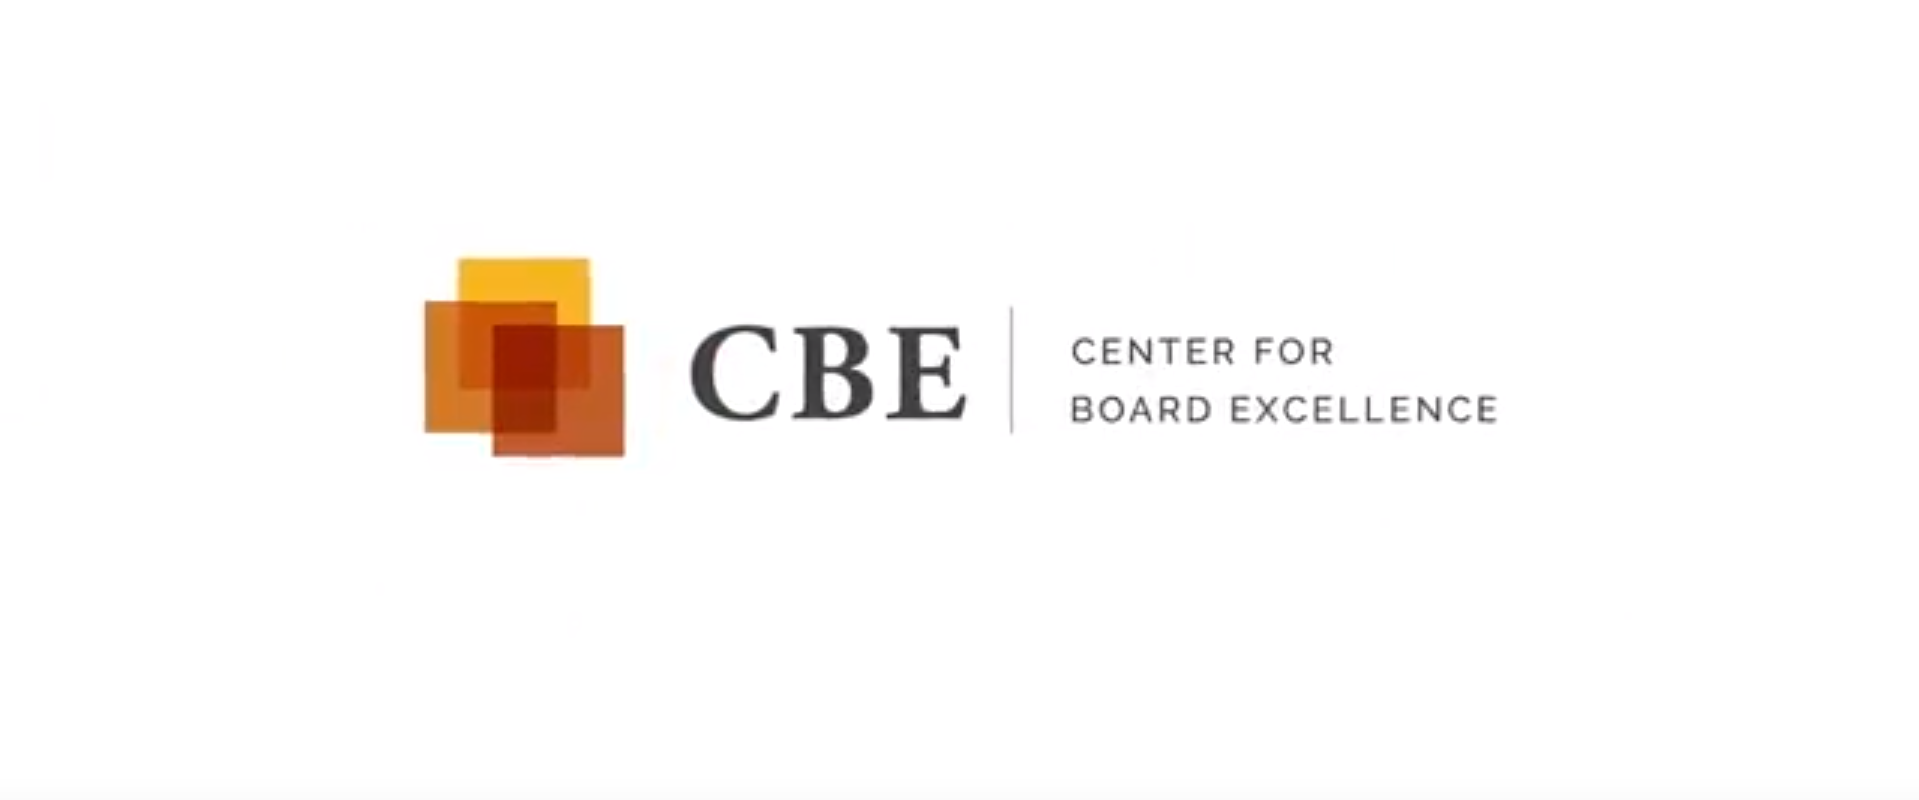 Stanton Chase Partnership with the Center for Board Excellence Cover Image